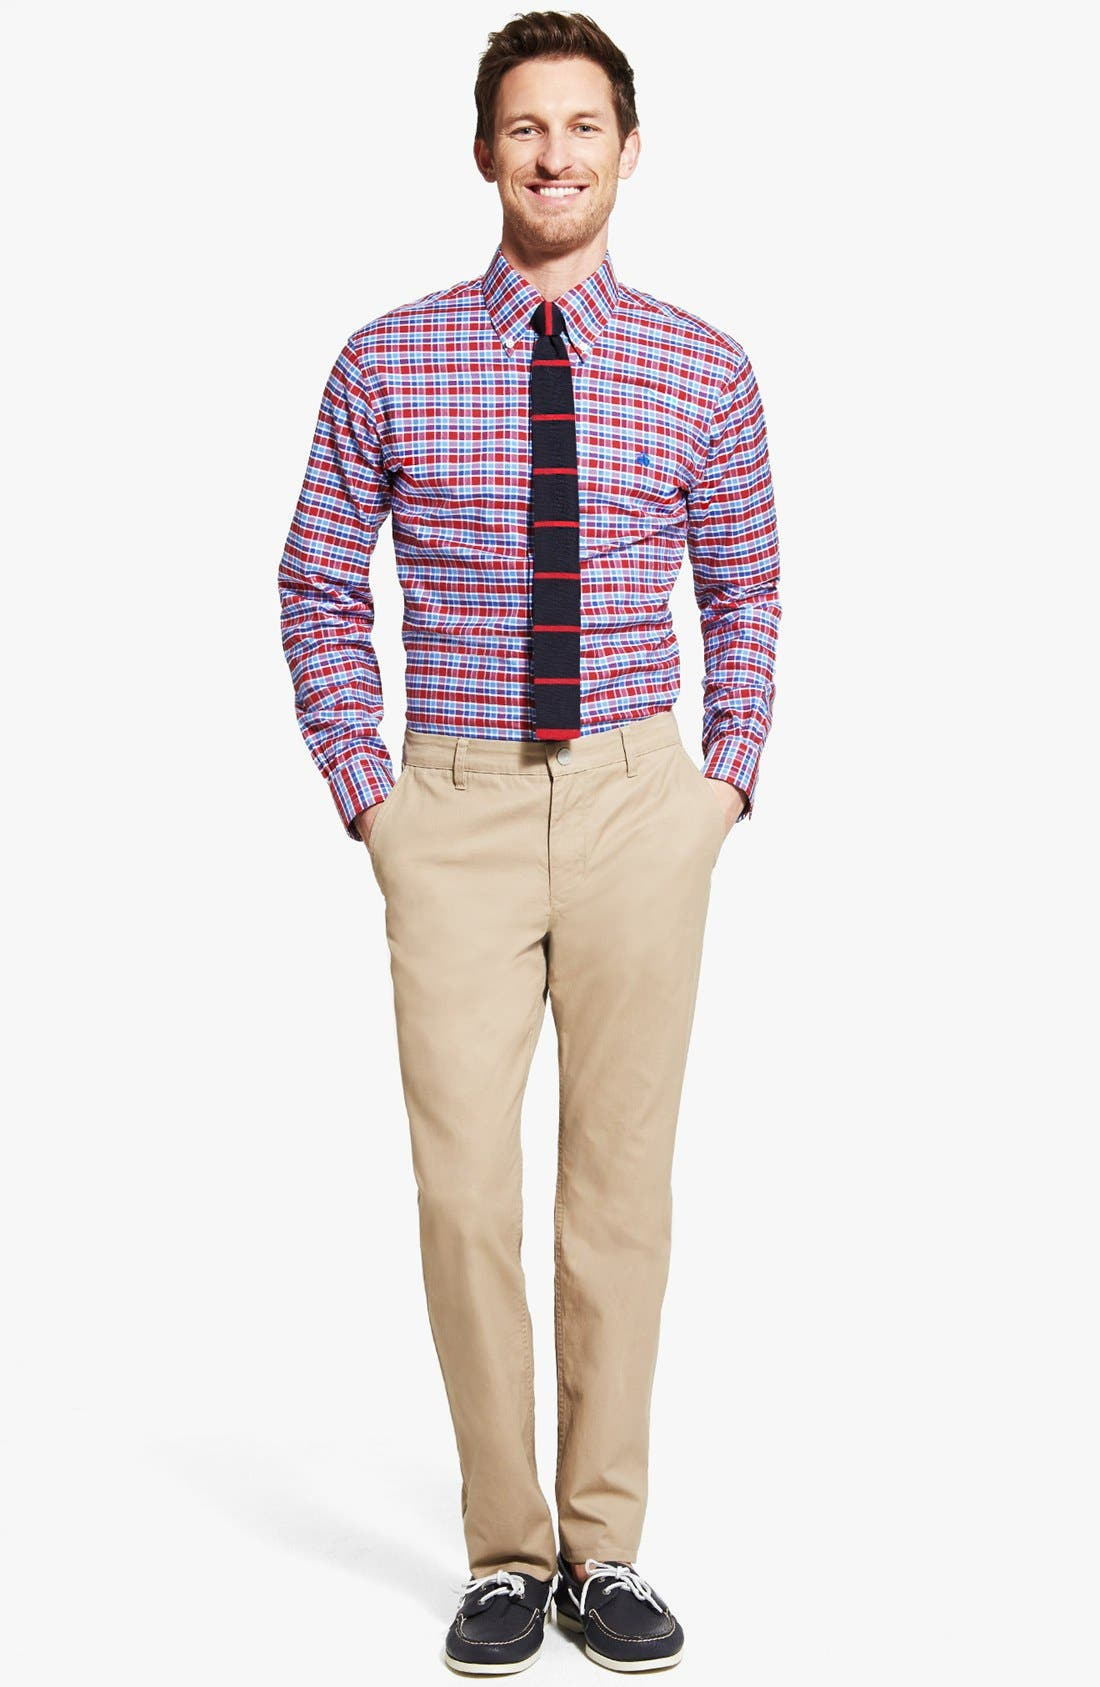 Alternate Image 1 Selected - Brooks Brothers Non-Iron Slim Fit Sport Shirt & Bonobos Washed Cotton Twill Chinos